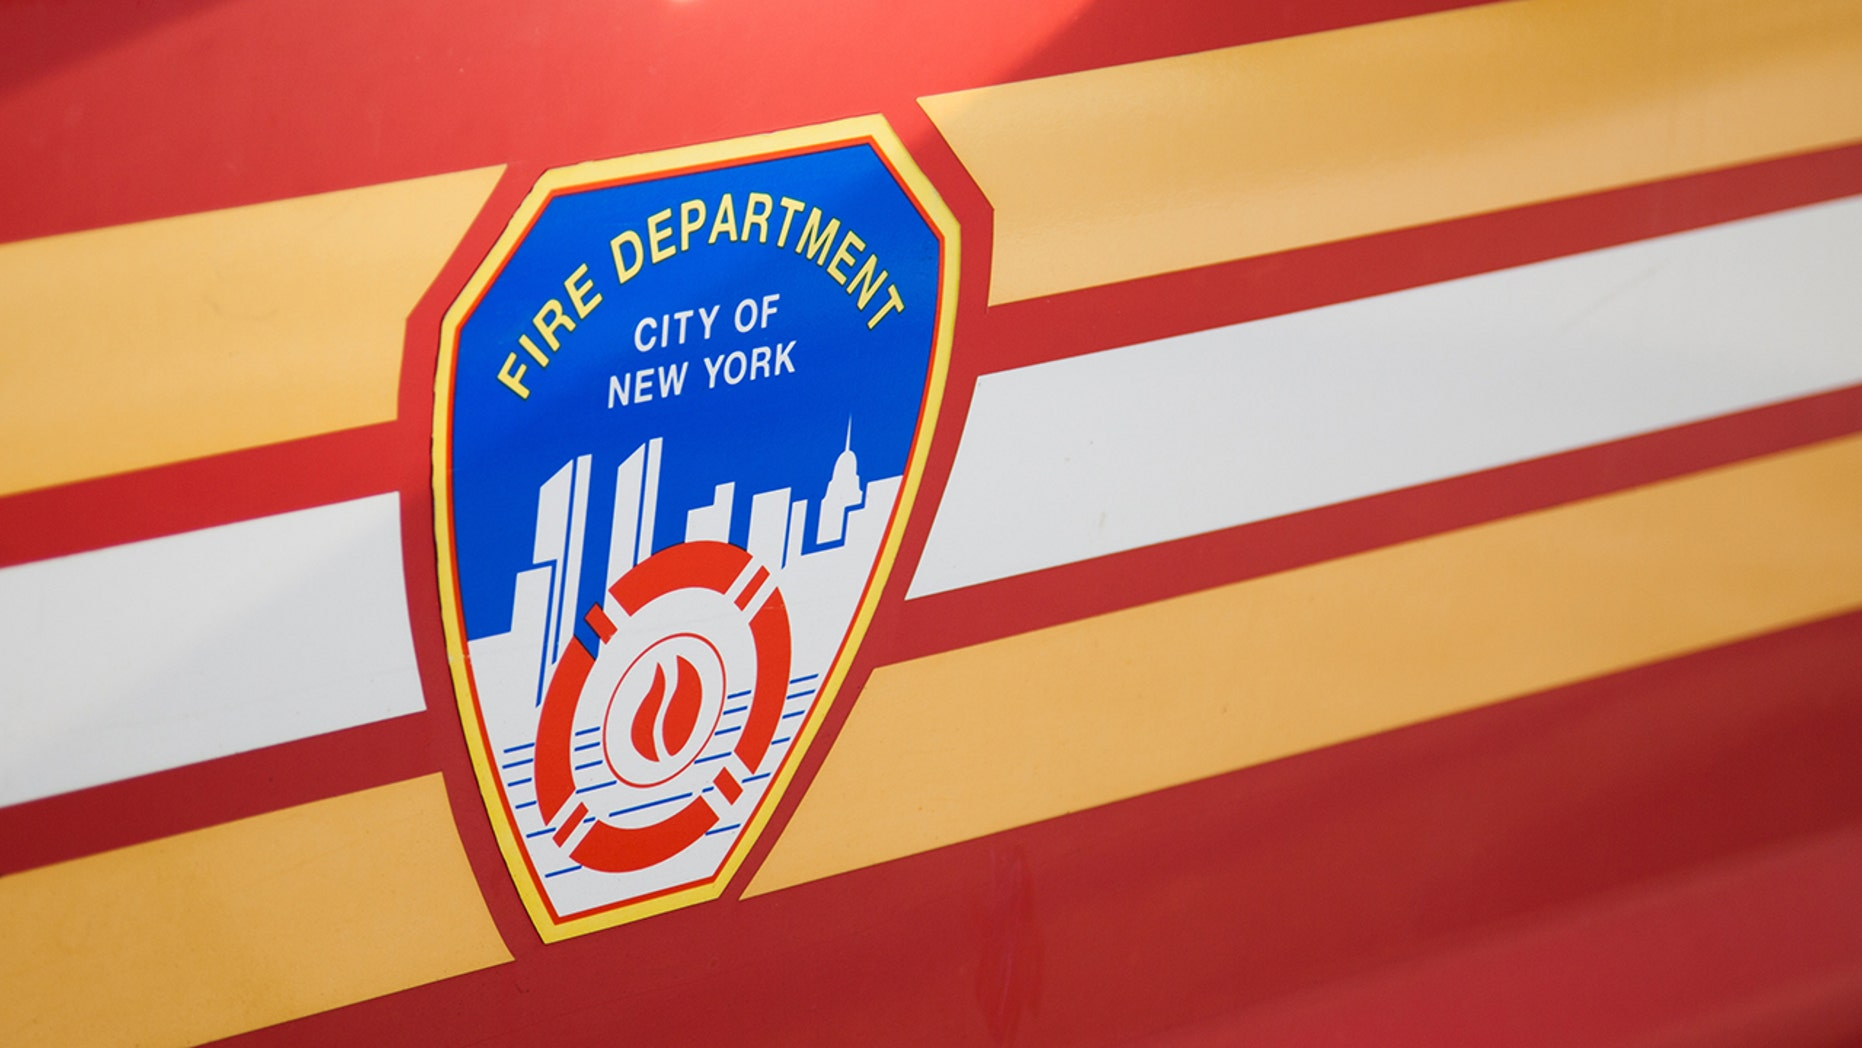 Several firefighters were injured while battling a blaze in Queens, N.Y.